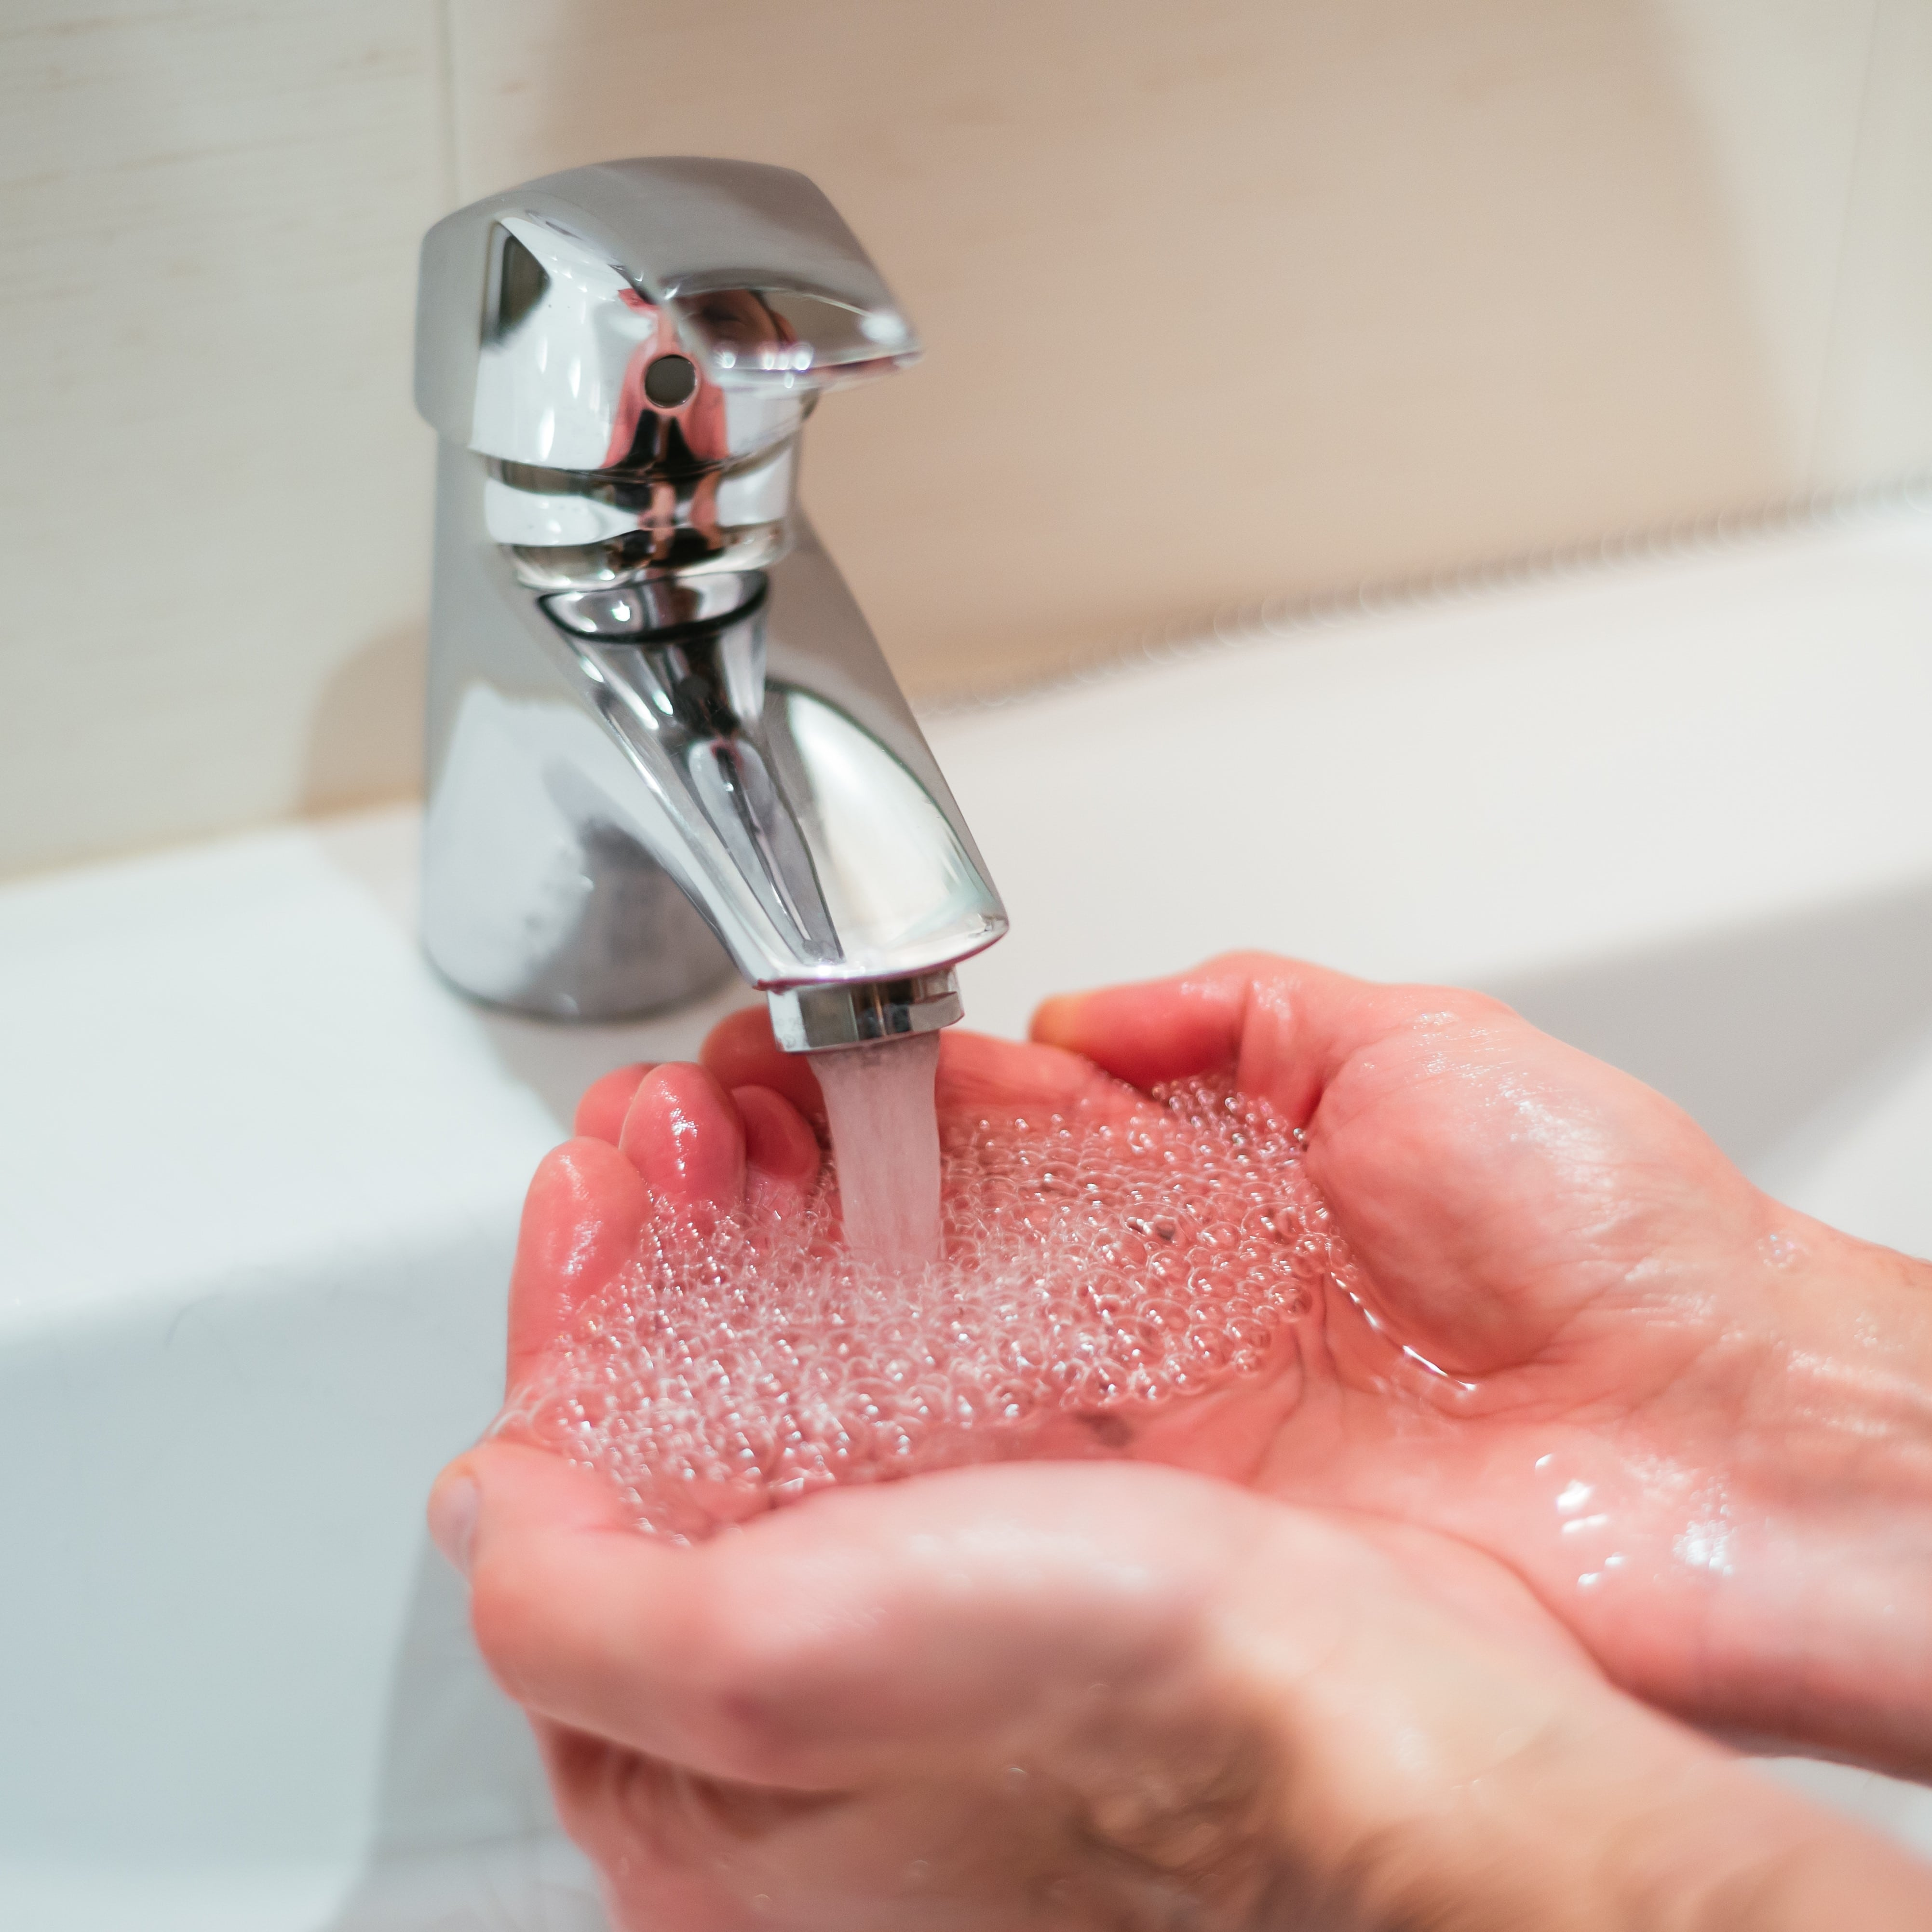 Closeup shot of a person washing hands in the sink